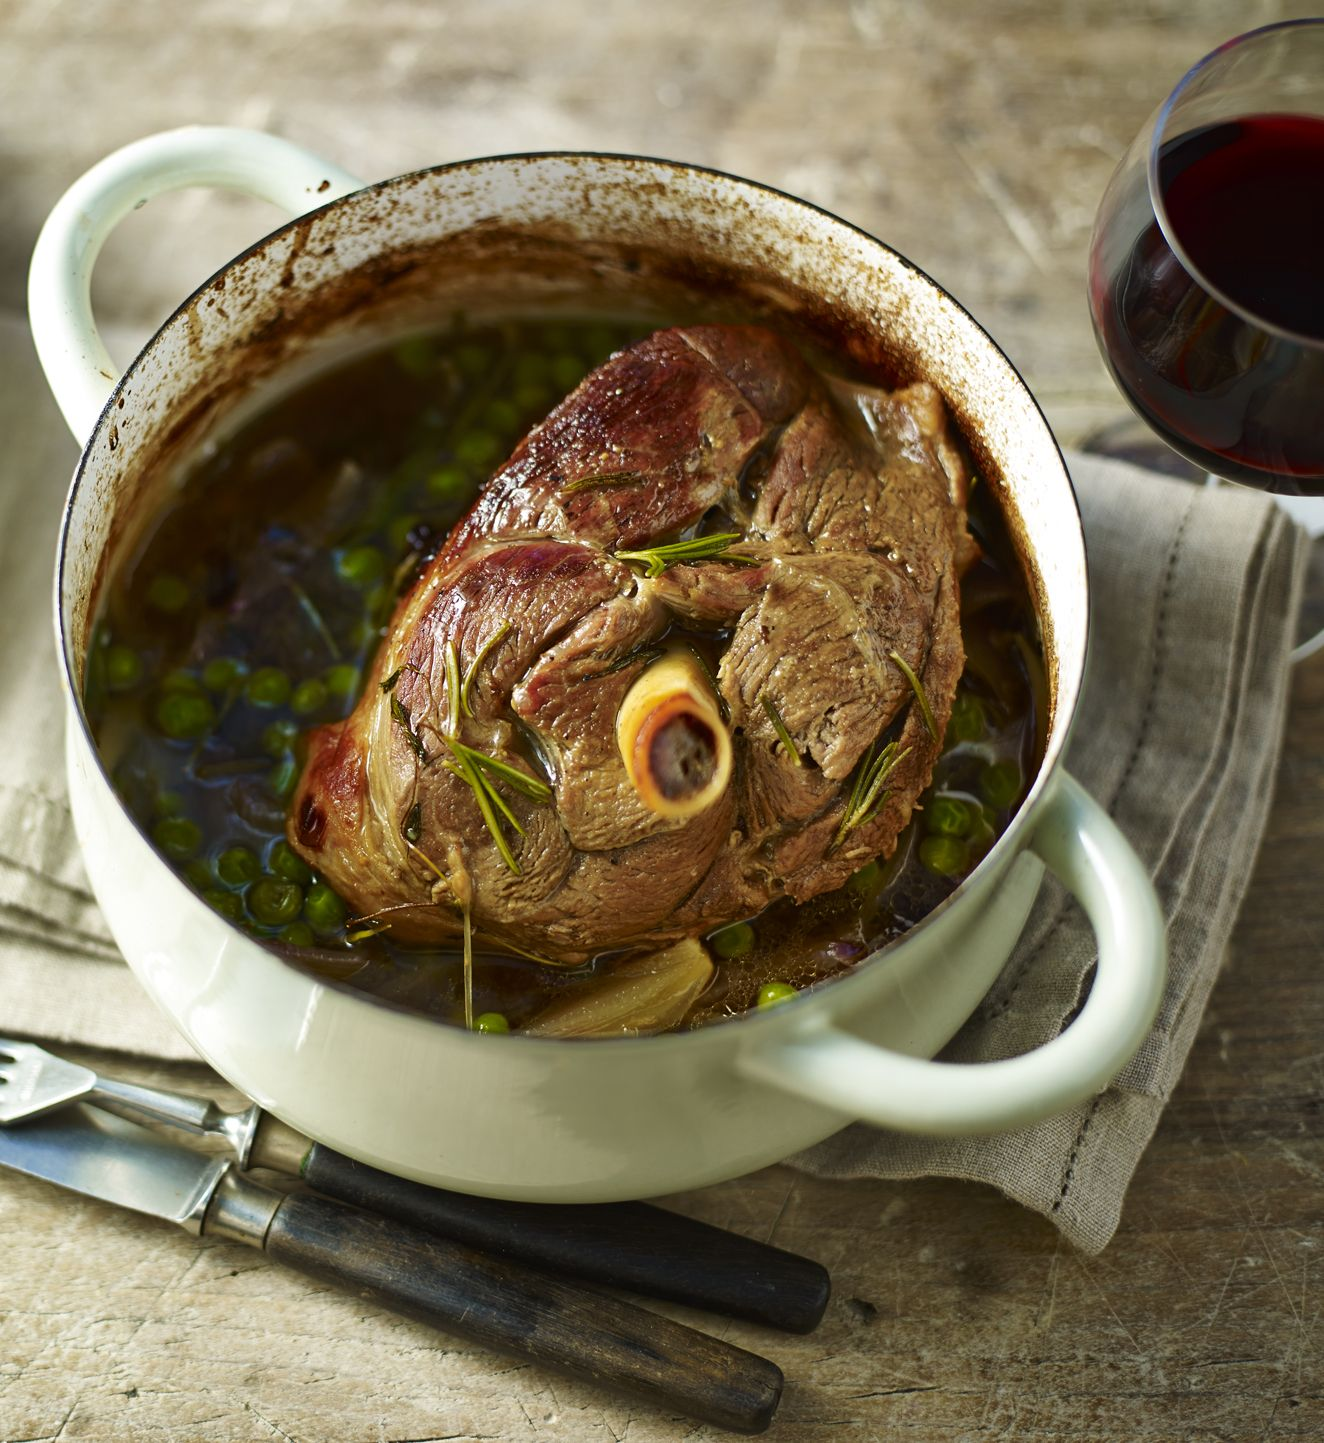 This is a slow cook but very fast prep dish - perfect for a lazy Sunday with the family.